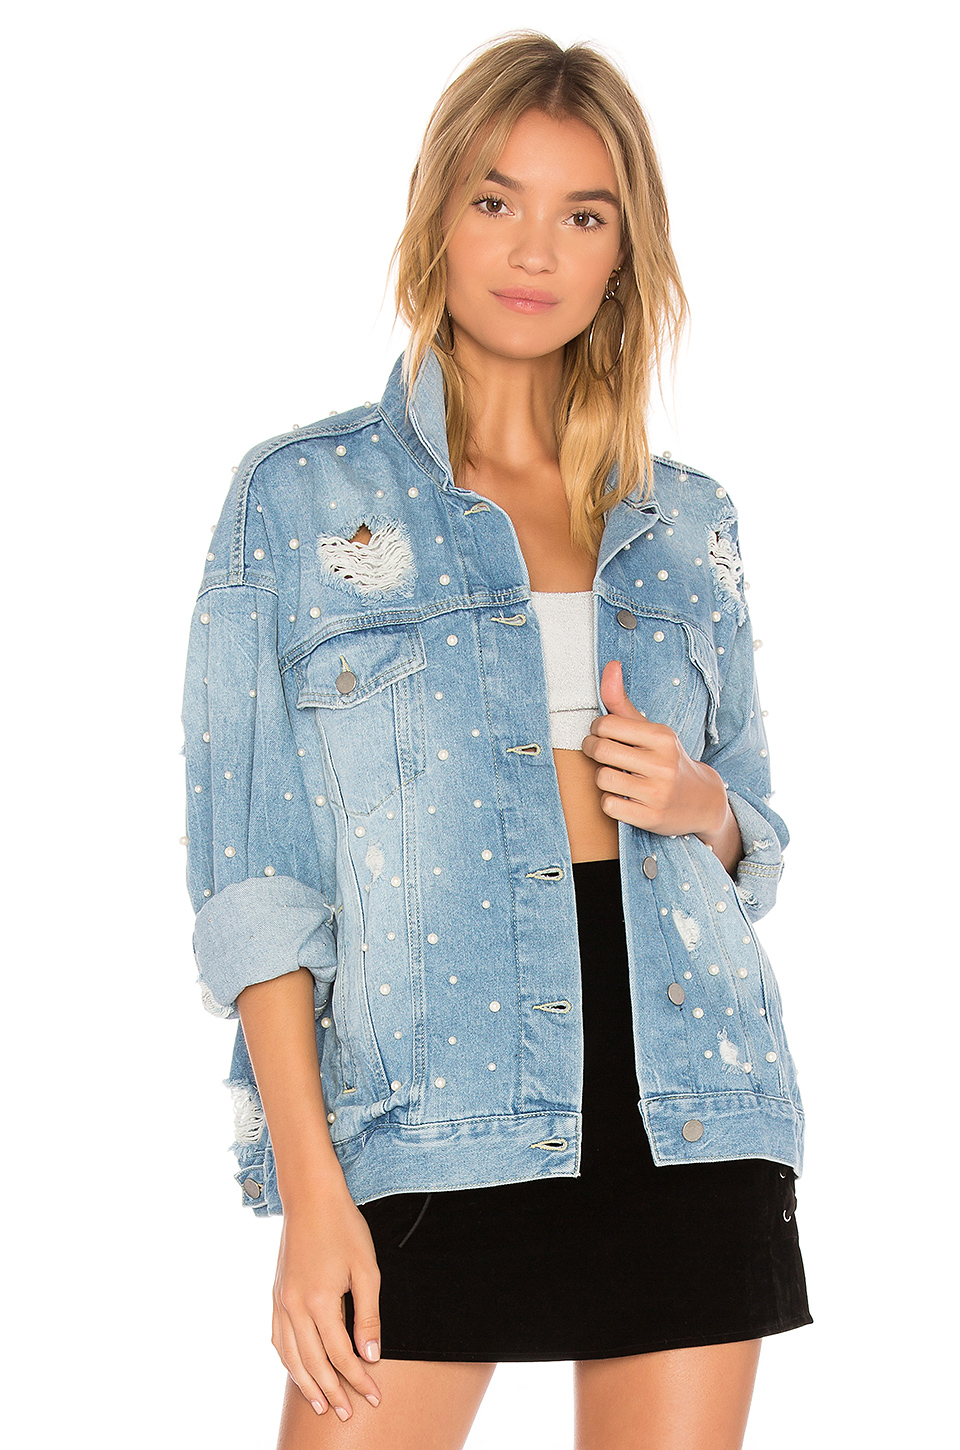 Free People Sunday Funday Trucker Jacket in Indigo Blue